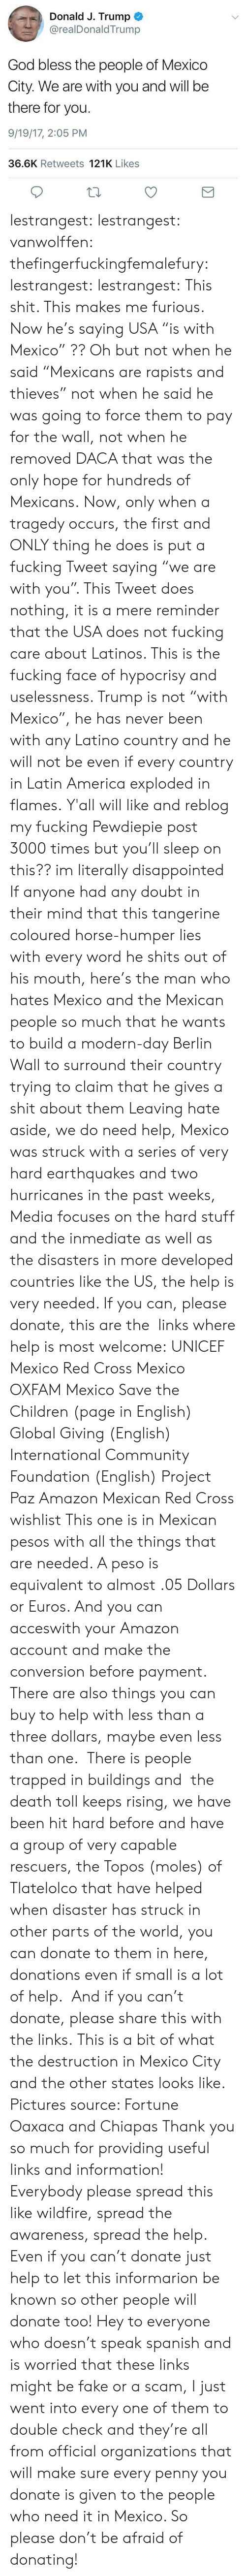 """Amazon, America, and Children: Donald J. Trump  @realDonaldTrump  God bless the people of Mexico  City. We are with you and will be  there for you.  9/19/17, 2:05 PM  36.6K Retweets 121K Likes lestrangest:  lestrangest:  vanwolffen:   thefingerfuckingfemalefury:  lestrangest:  lestrangest:   This shit. This makes me furious. Now he's saying USA """"is with Mexico"""" ?? Oh but not when he said """"Mexicans are rapists and thieves"""" not when he said he was going to force them to pay for the wall, not when he removed DACA that was the only hope for hundreds of Mexicans. Now, only when a tragedy occurs, the first and ONLY thing he does is put a fucking Tweet saying """"we are with you"""". This Tweet does nothing, it is a mere reminder that the USA does not fucking care about Latinos. This is the fucking face of hypocrisy and uselessness. Trump is not """"with Mexico"""", he has never been with any Latino country and he will not be even if every country in Latin America exploded in flames.   Y'all will like and reblog my fucking Pewdiepie post 3000 times but you'll sleep on this?? im literally disappointed   If anyone had any doubt in their mind that this tangerine coloured horse-humper lies with every word he shits out of his mouth, here's the man who hates Mexico and the Mexican people so much that he wants to build a modern-day Berlin Wall to surround their country trying to claim that he gives a shit about them   Leaving hate aside, we do need help, Mexico was struck with a series of very hard earthquakes and two hurricanes in the past weeks, Media focuses on the hard stuff and the inmediate as well as the disasters in more developed countries like the US, the help is very needed. If you can, please donate, this are the links where help is most welcome: UNICEF Mexico Red Cross Mexico OXFAM Mexico Save the Children (page in English) Global Giving (English) International Community Foundation(English) Project Paz Amazon Mexican Red Cross wishlistThis one is in Mexican pesos with all the th"""